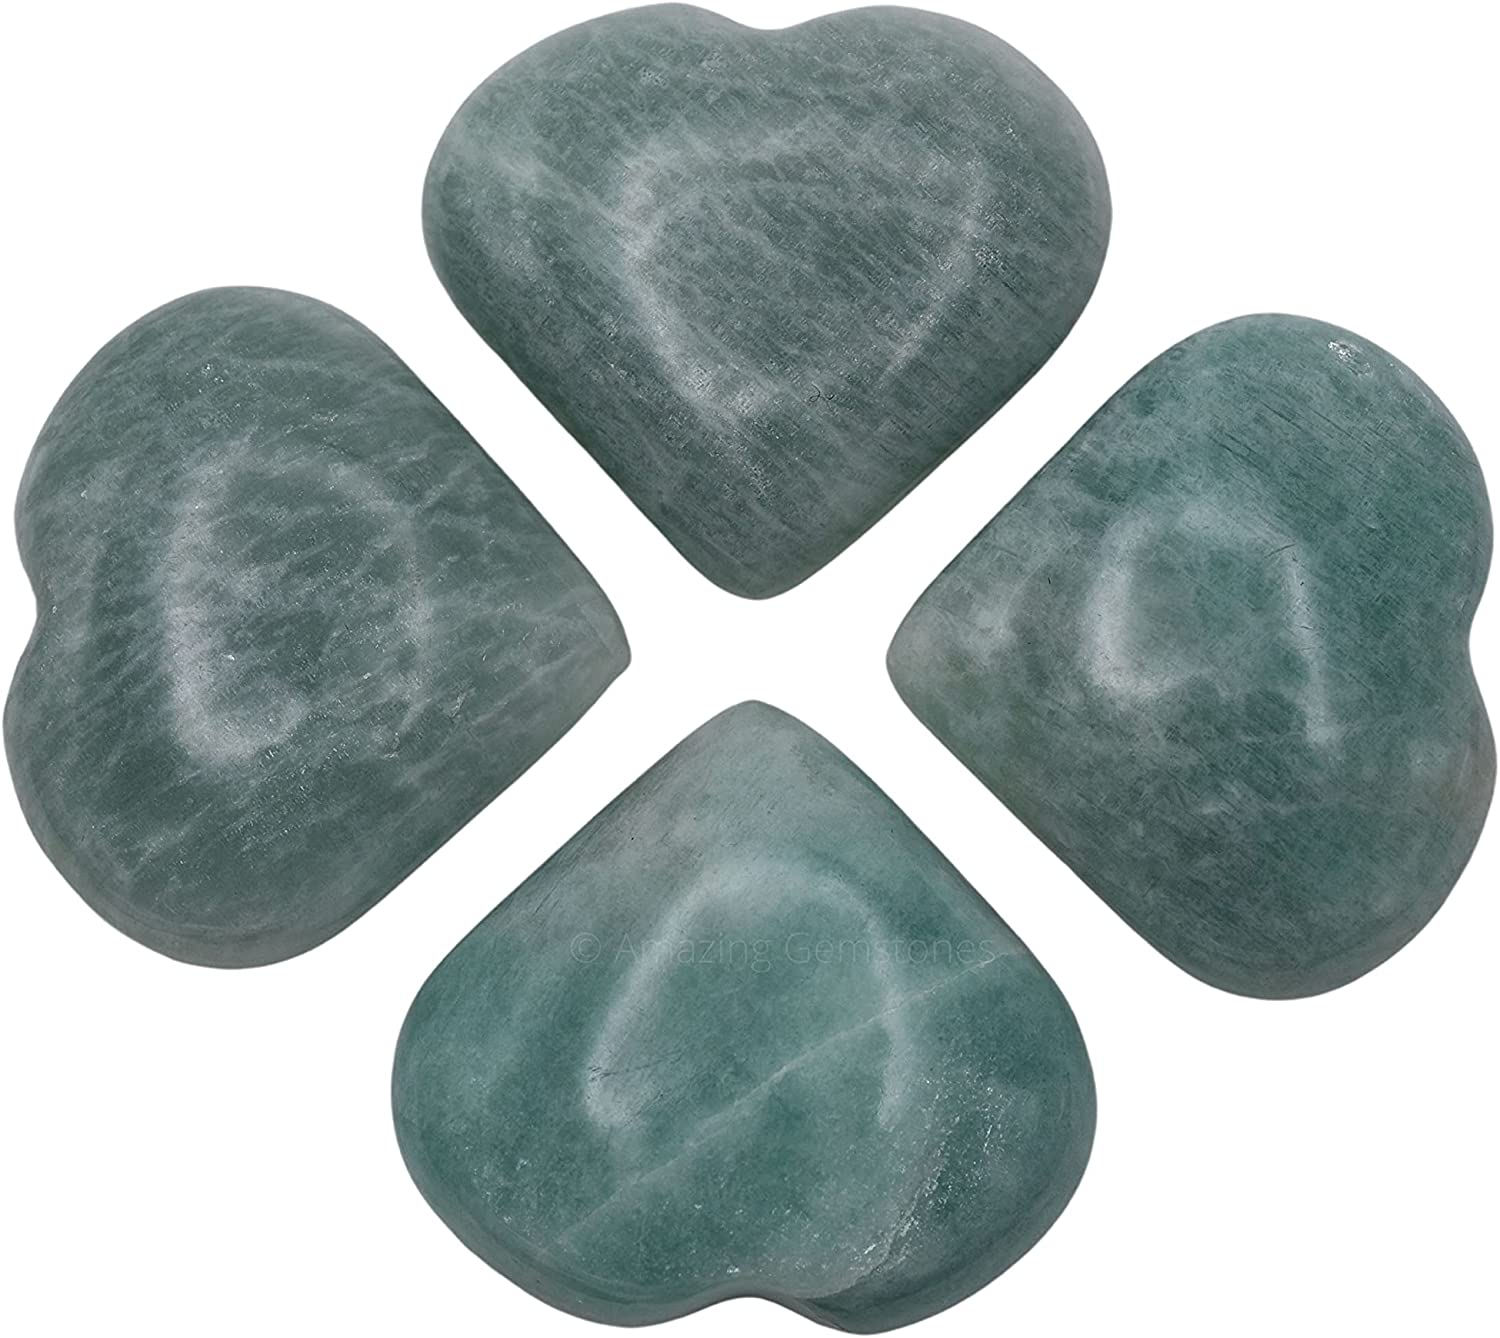 Amazonite Crystal Heart Limited Special Price Palm Stone Worry Max 58% OFF - Massage Pocket